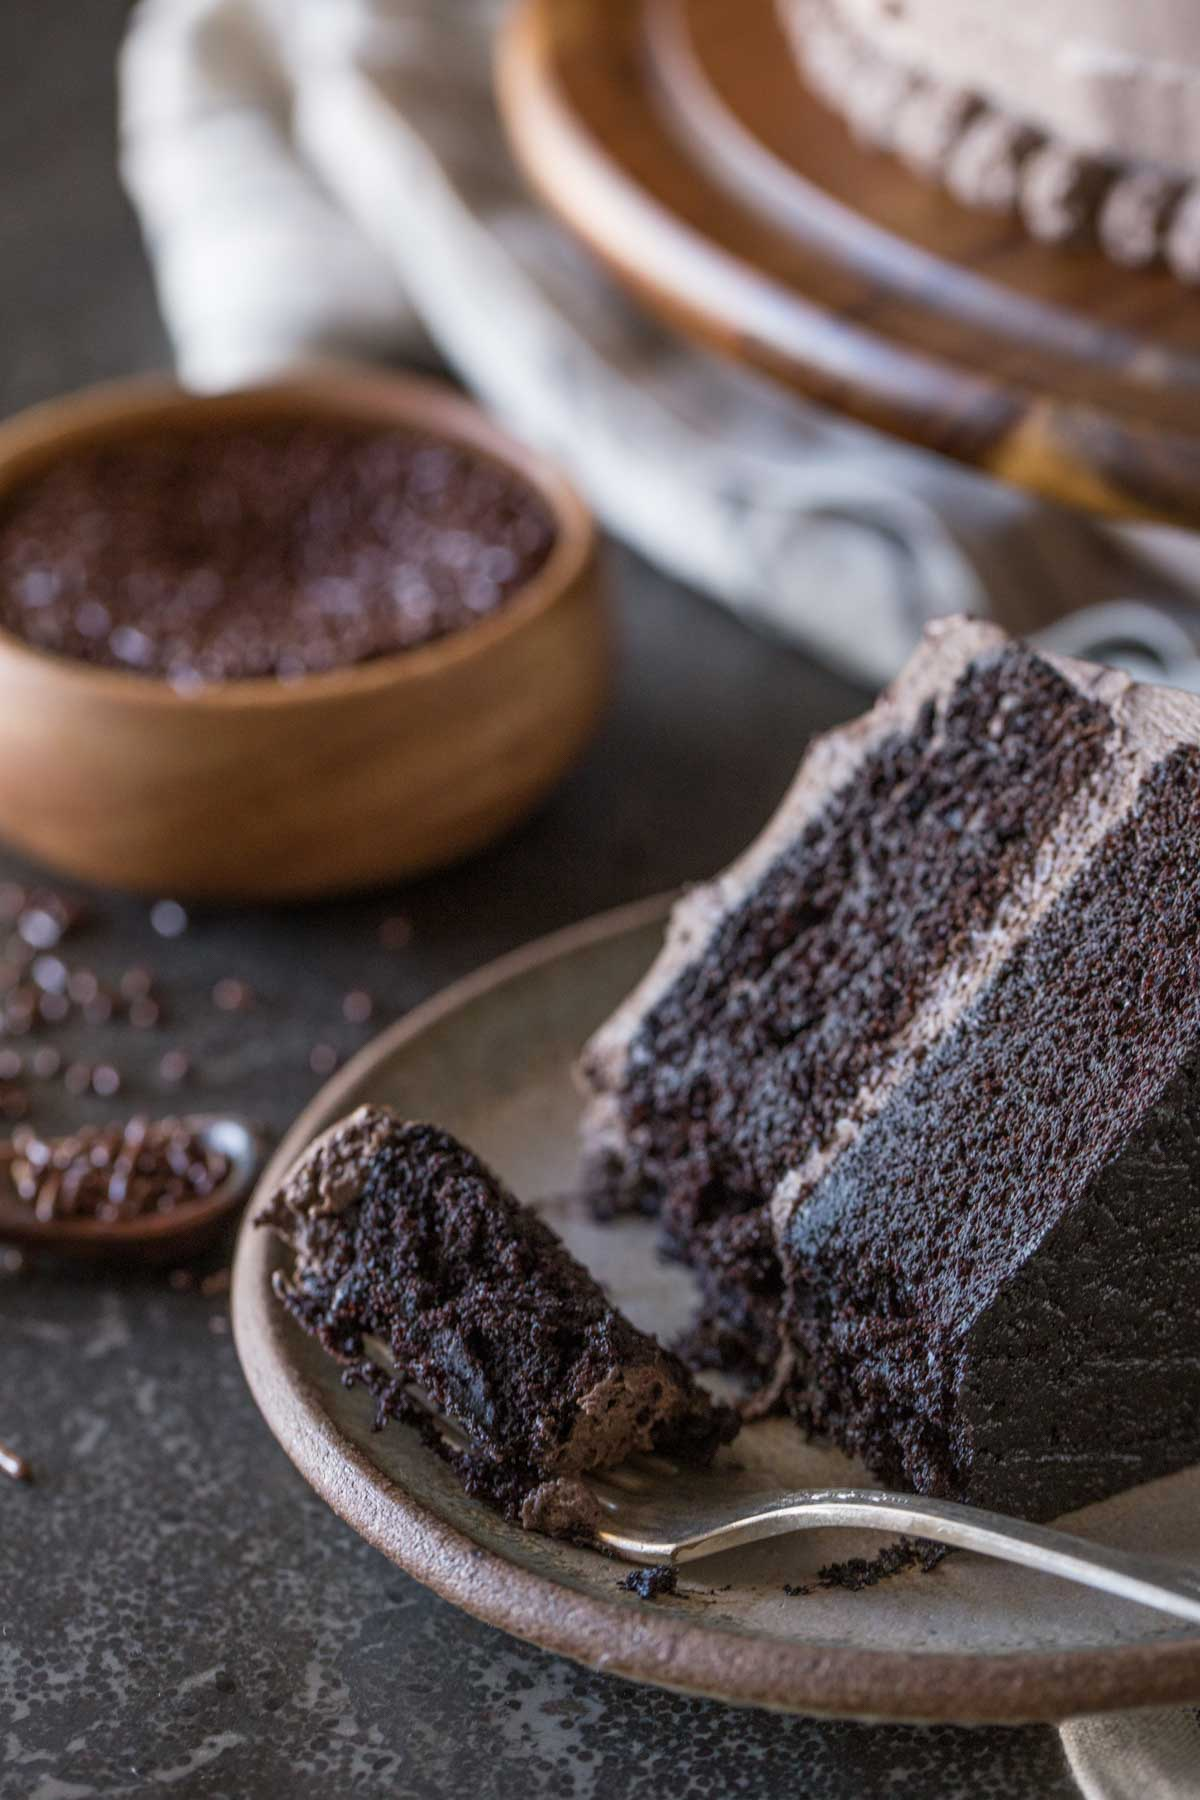 A slice of Dark Chocolate Cake With Whipped Cream Frosting on a plate along with a fork full of cake, and a small wood bowl of chocolate sprinkles in the background.